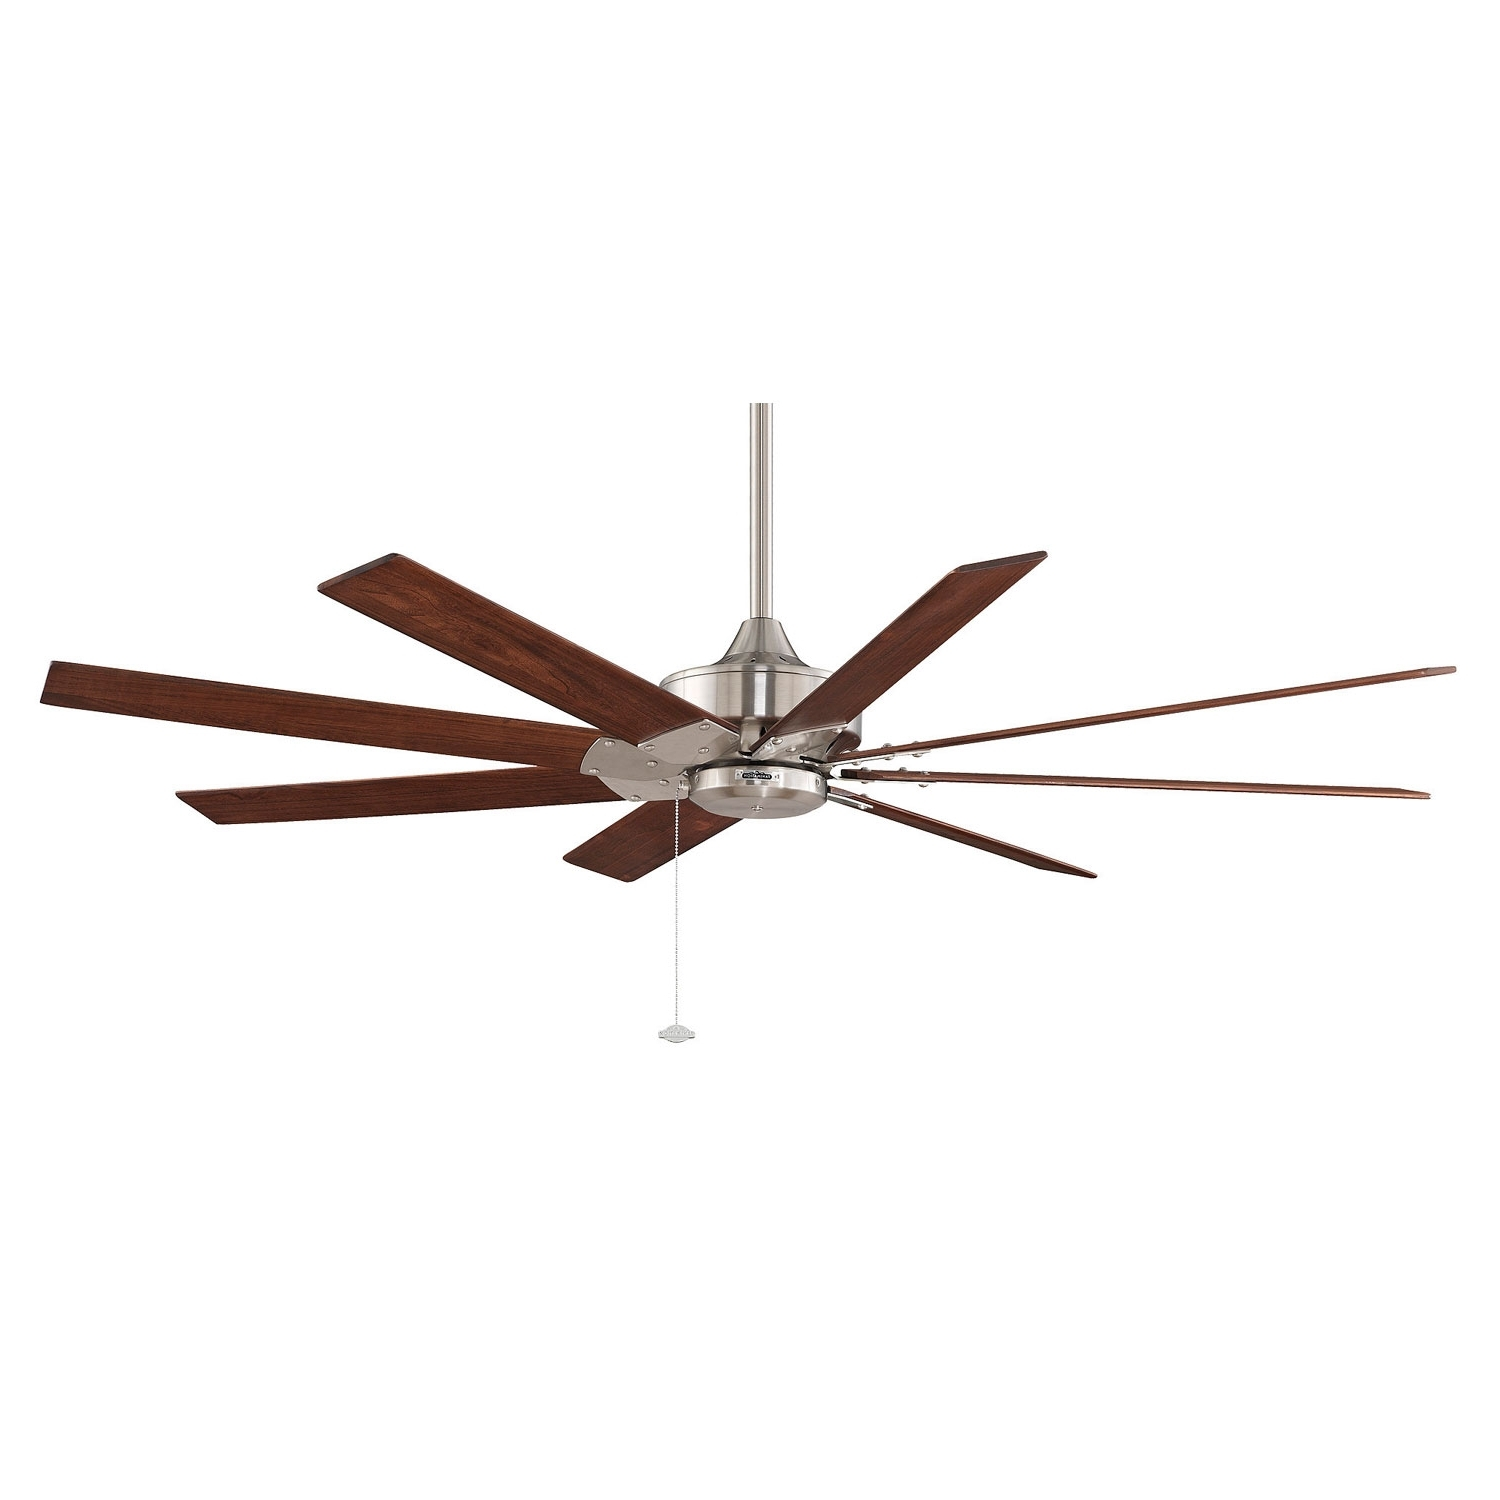 Best And Newest 60 Inch Outdoor Ceiling Fans With Lights Within Interior (View 10 of 20)